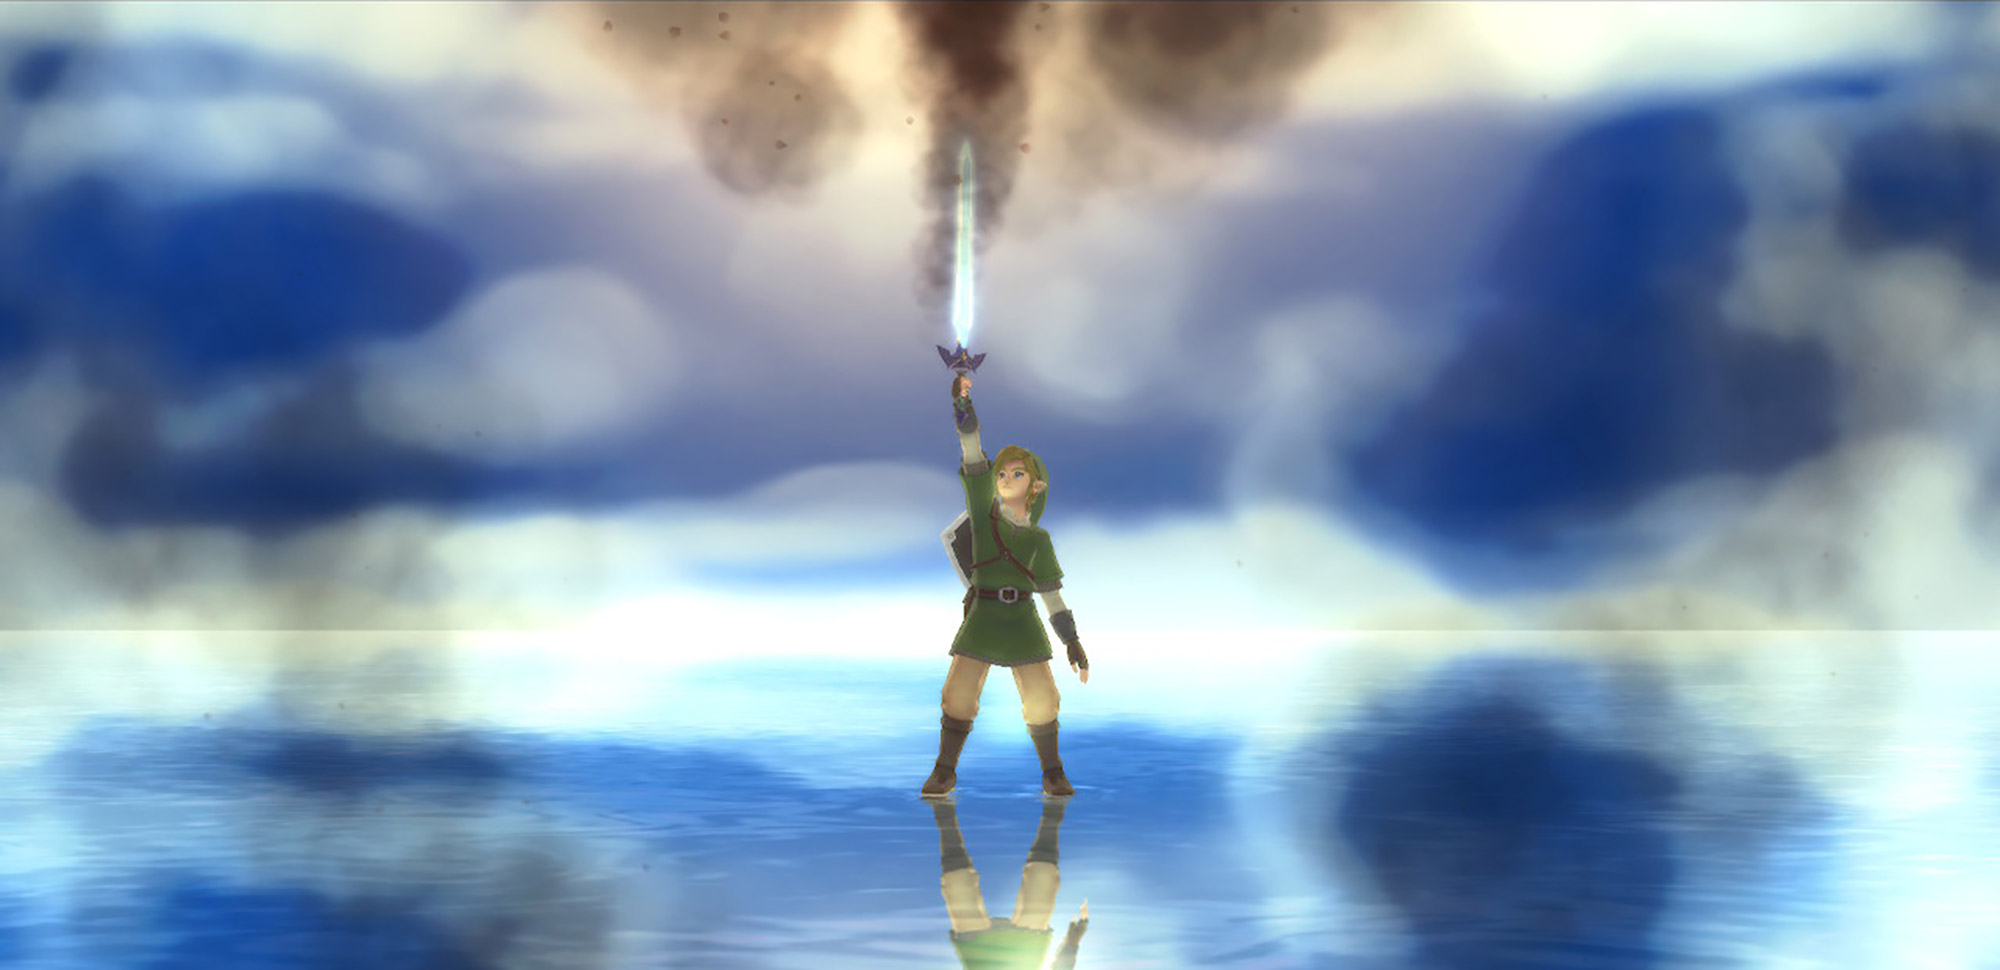 The videogame character Link holds up a sword